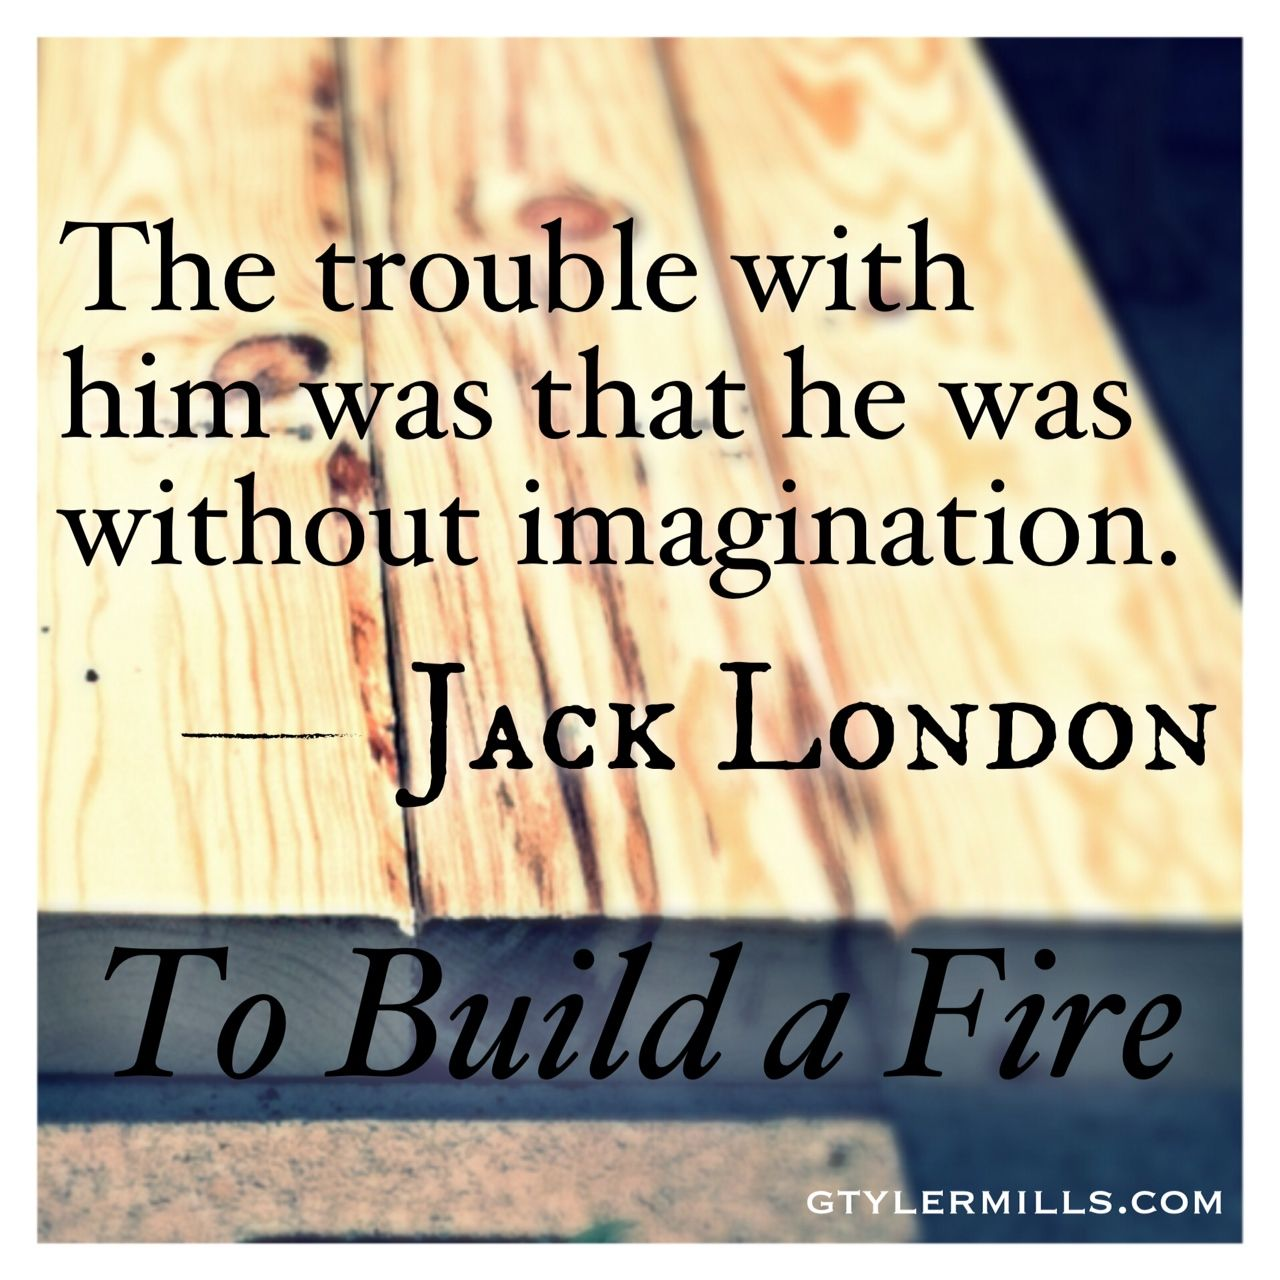 To build a fire jack london - To Build A Fire